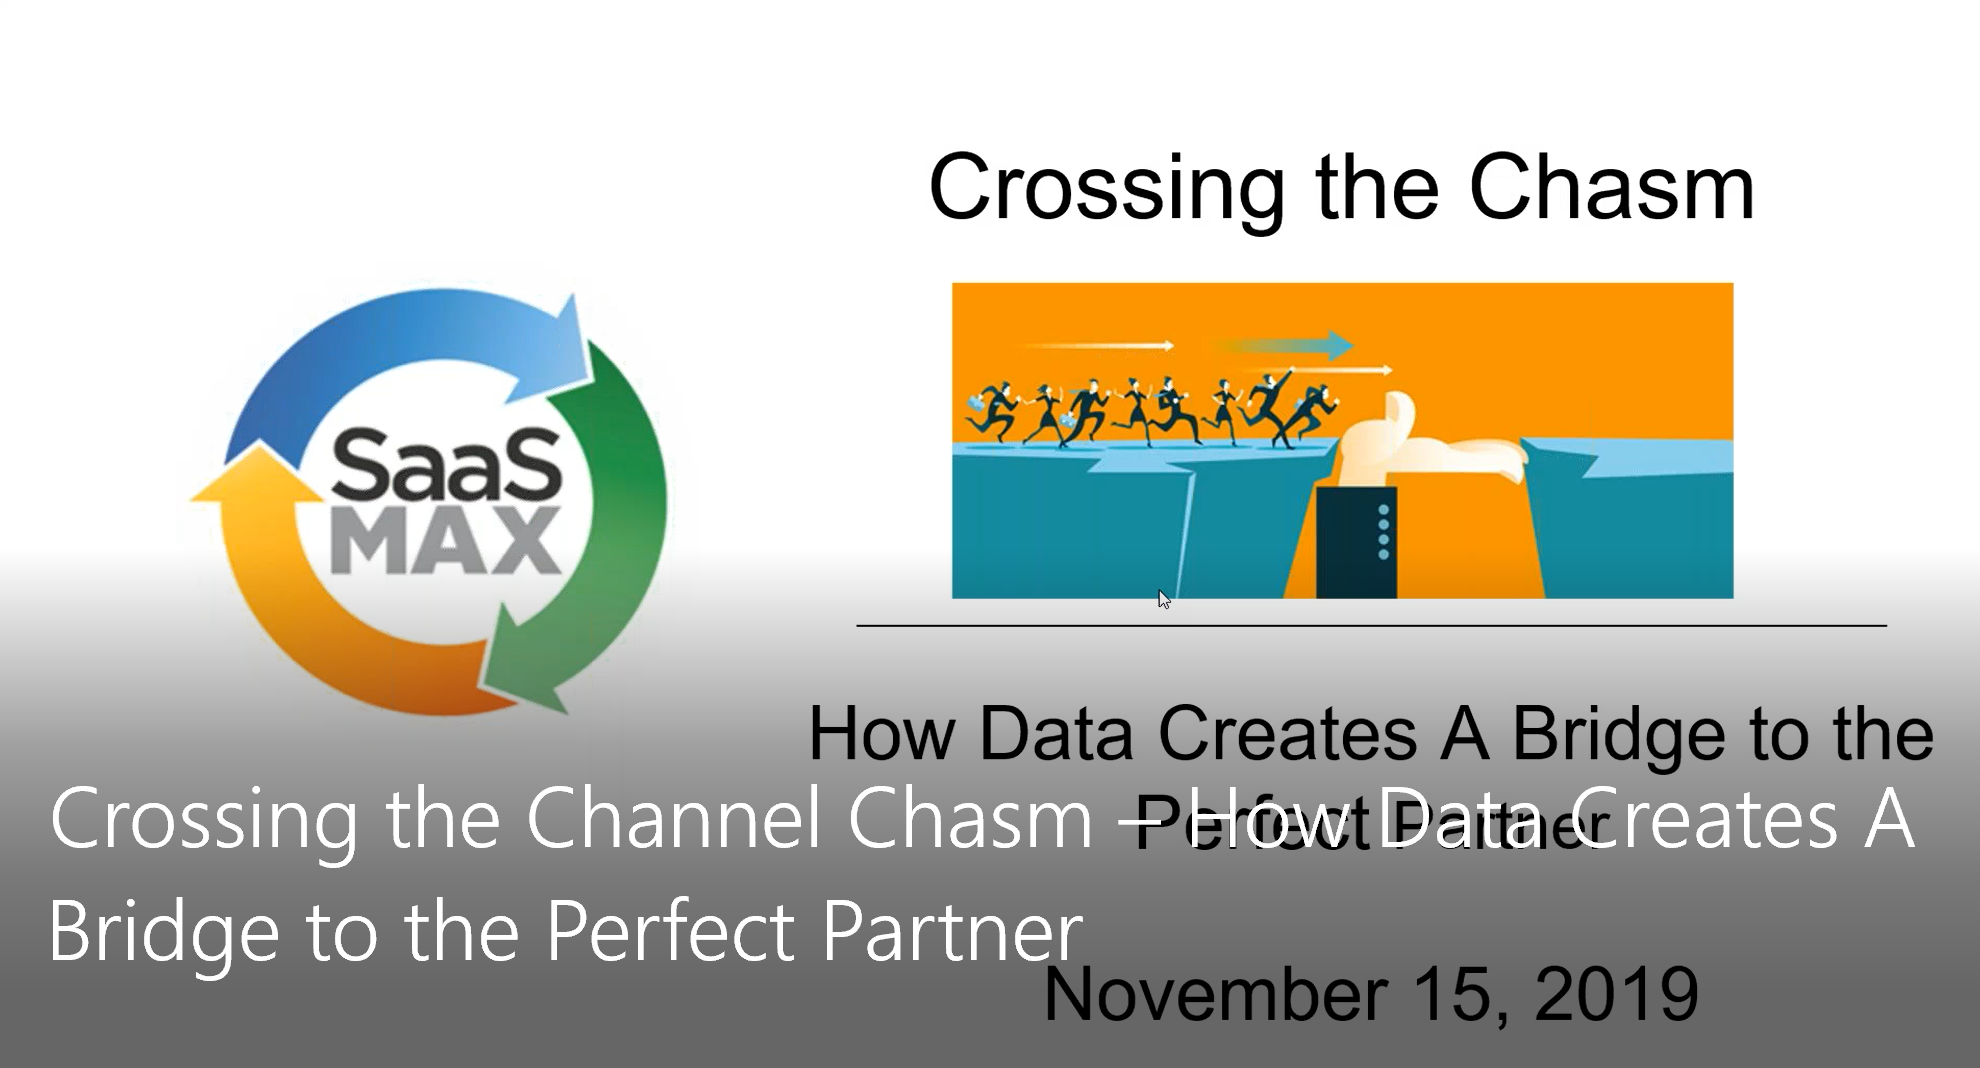 Crossing the Channel Chasm – How Data Creates A Bridge to the Perfect Partner